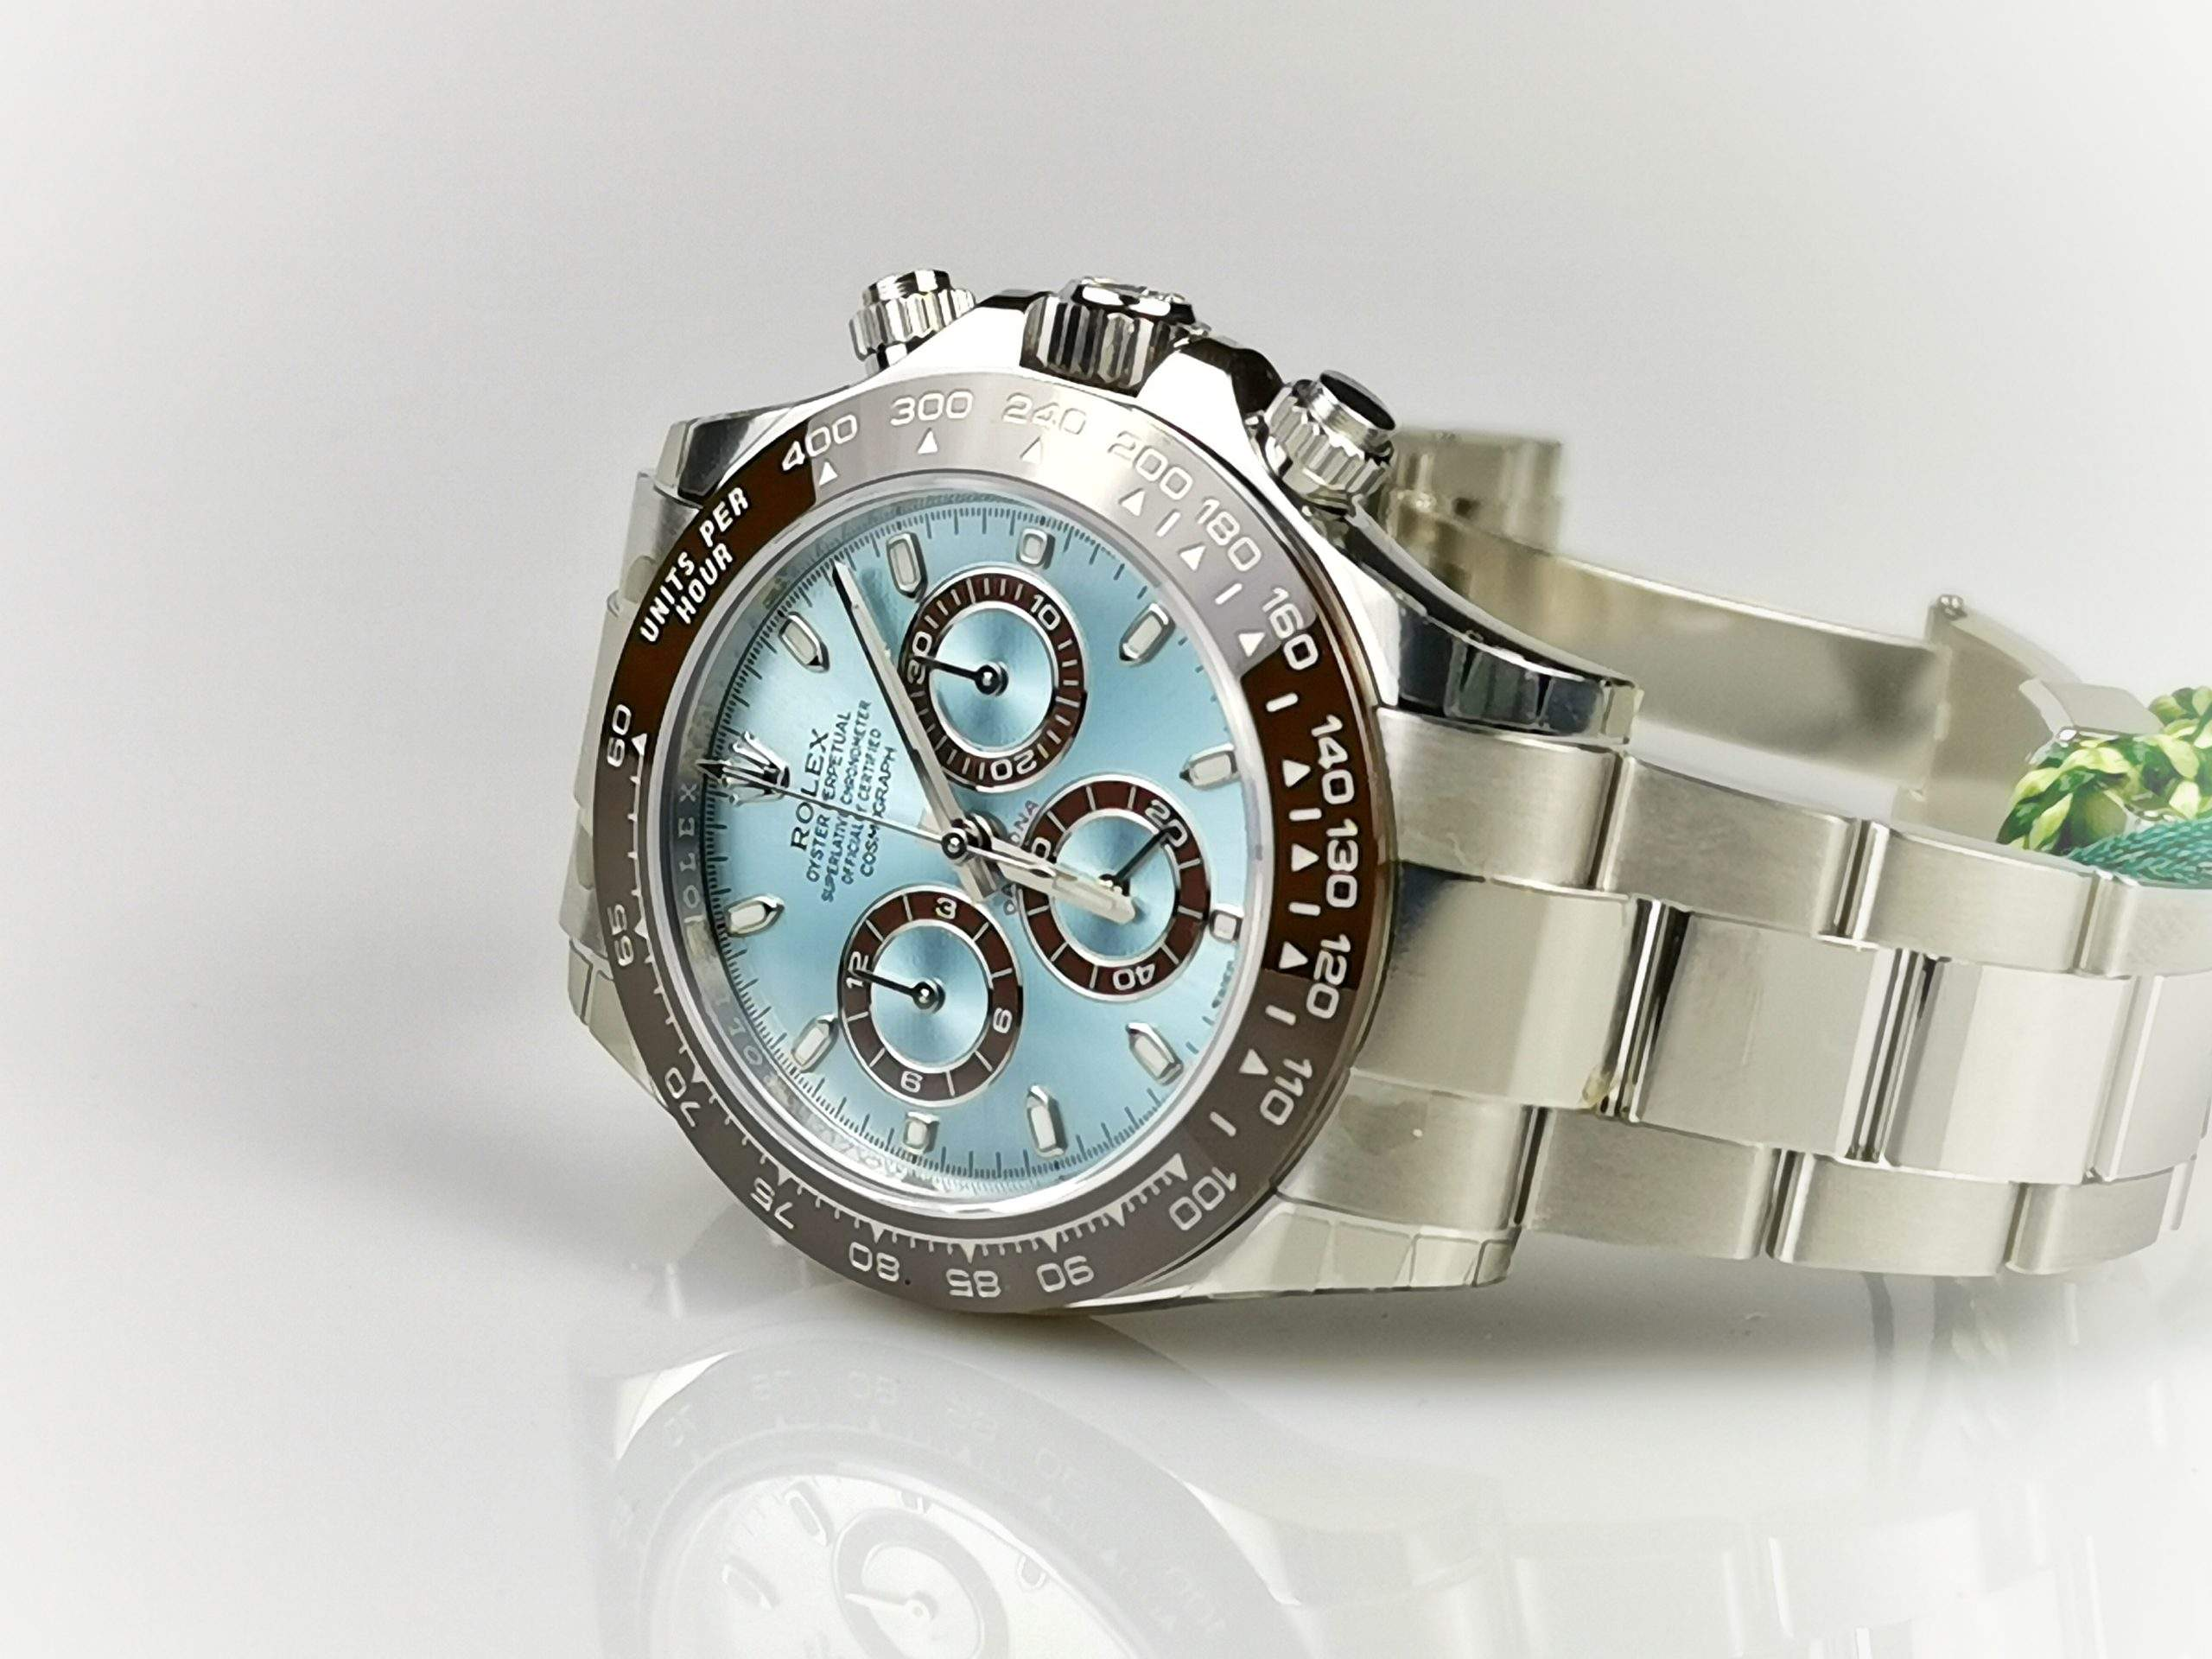 The Rolex Daytona is one of Kevin Hart's favorite watches.